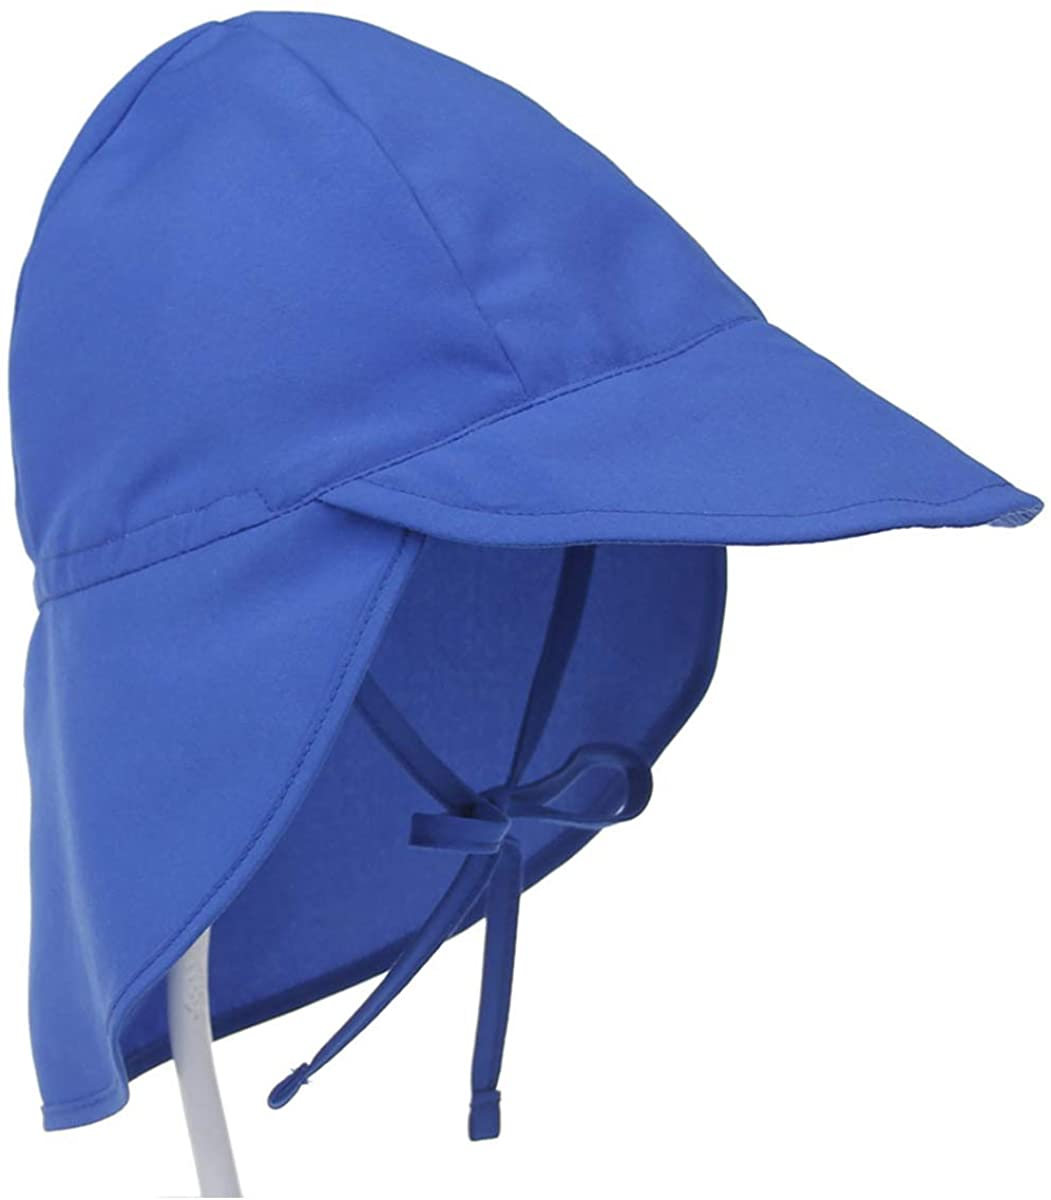 BOZEVON Toddler Beach Hat, Adjustable Soft Sun Hat, Uv Protection and Wind Protection